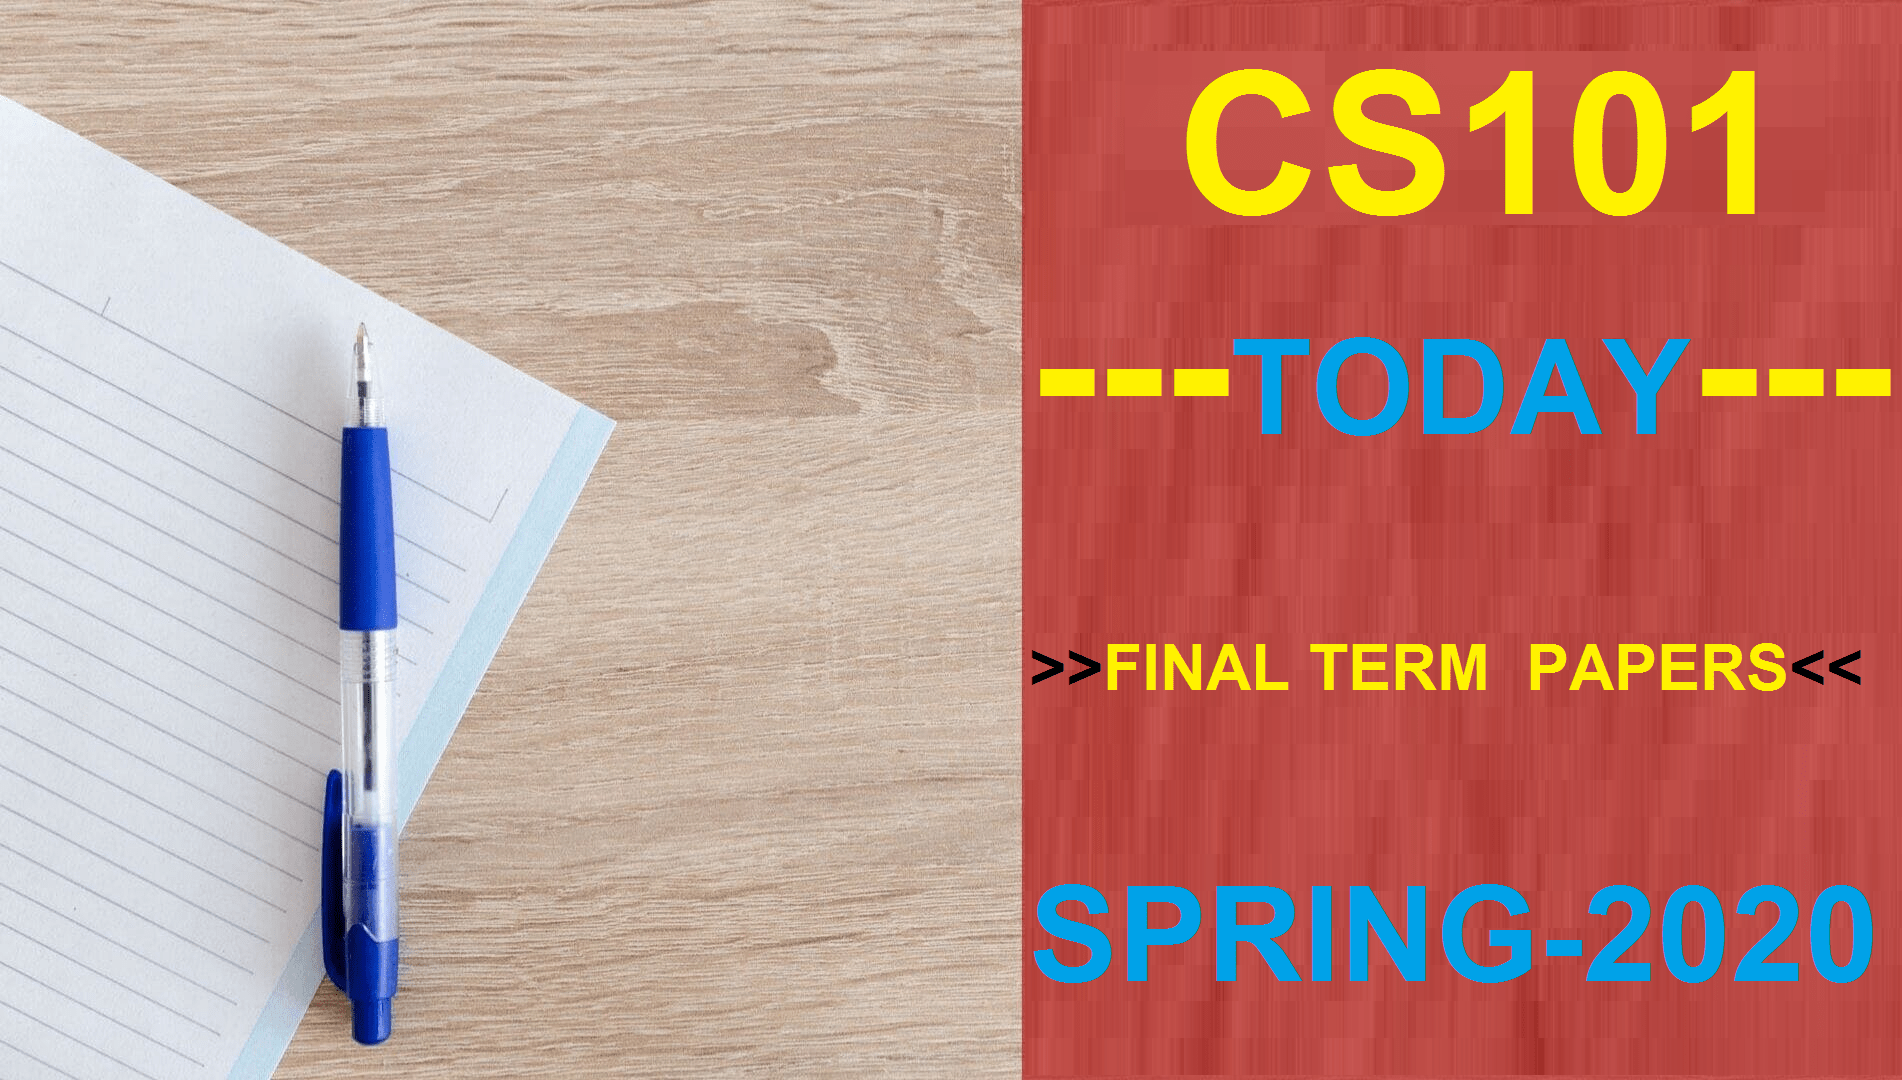 CS101 FINALTERM PAPERS SPRING 2020